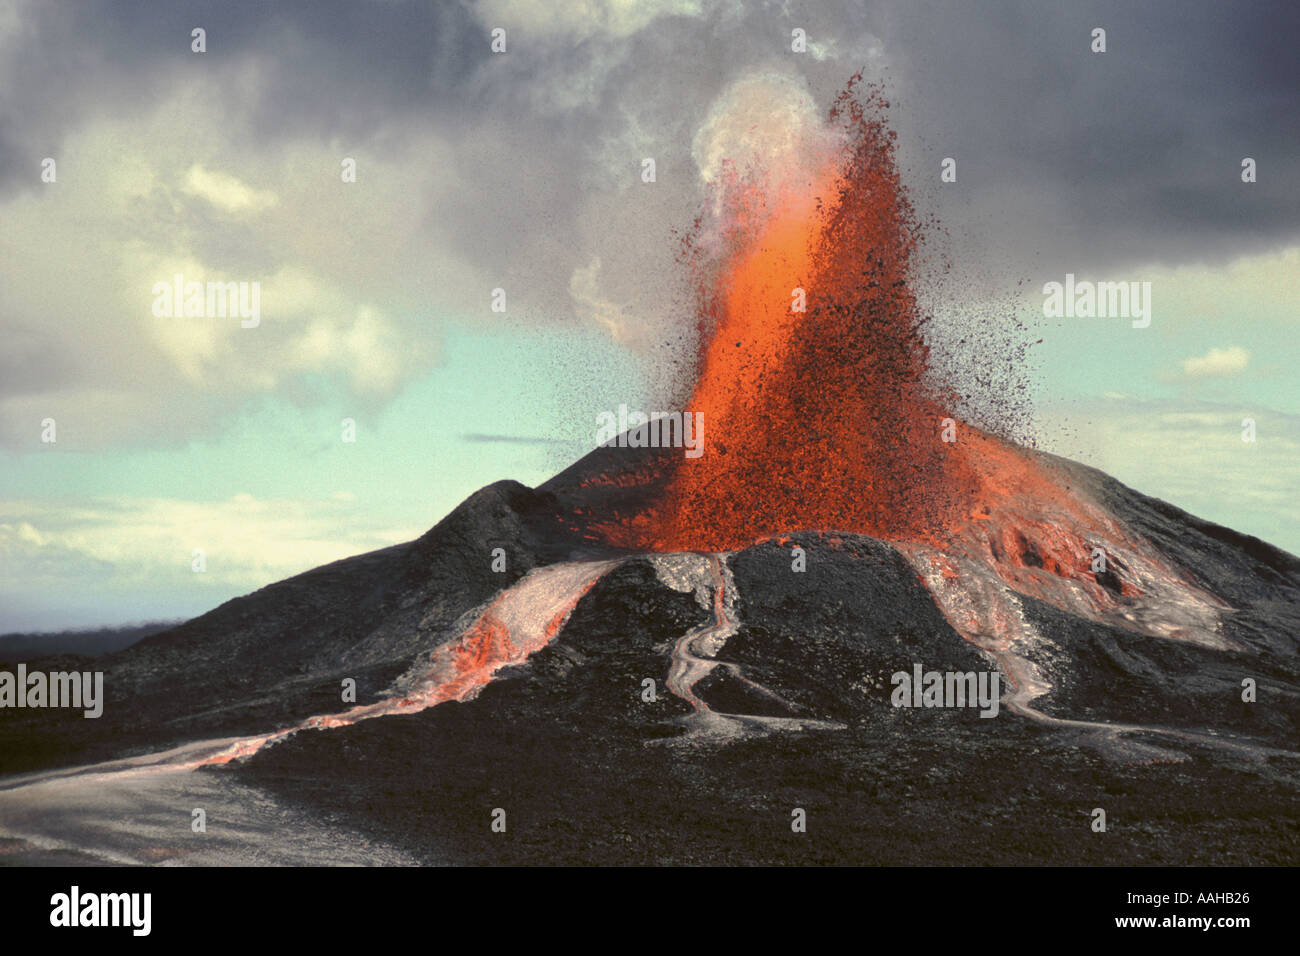 Pu'u O'o volcano eruption Hawaii Volcanoes National Park Island of Hawaii. - Stock Image